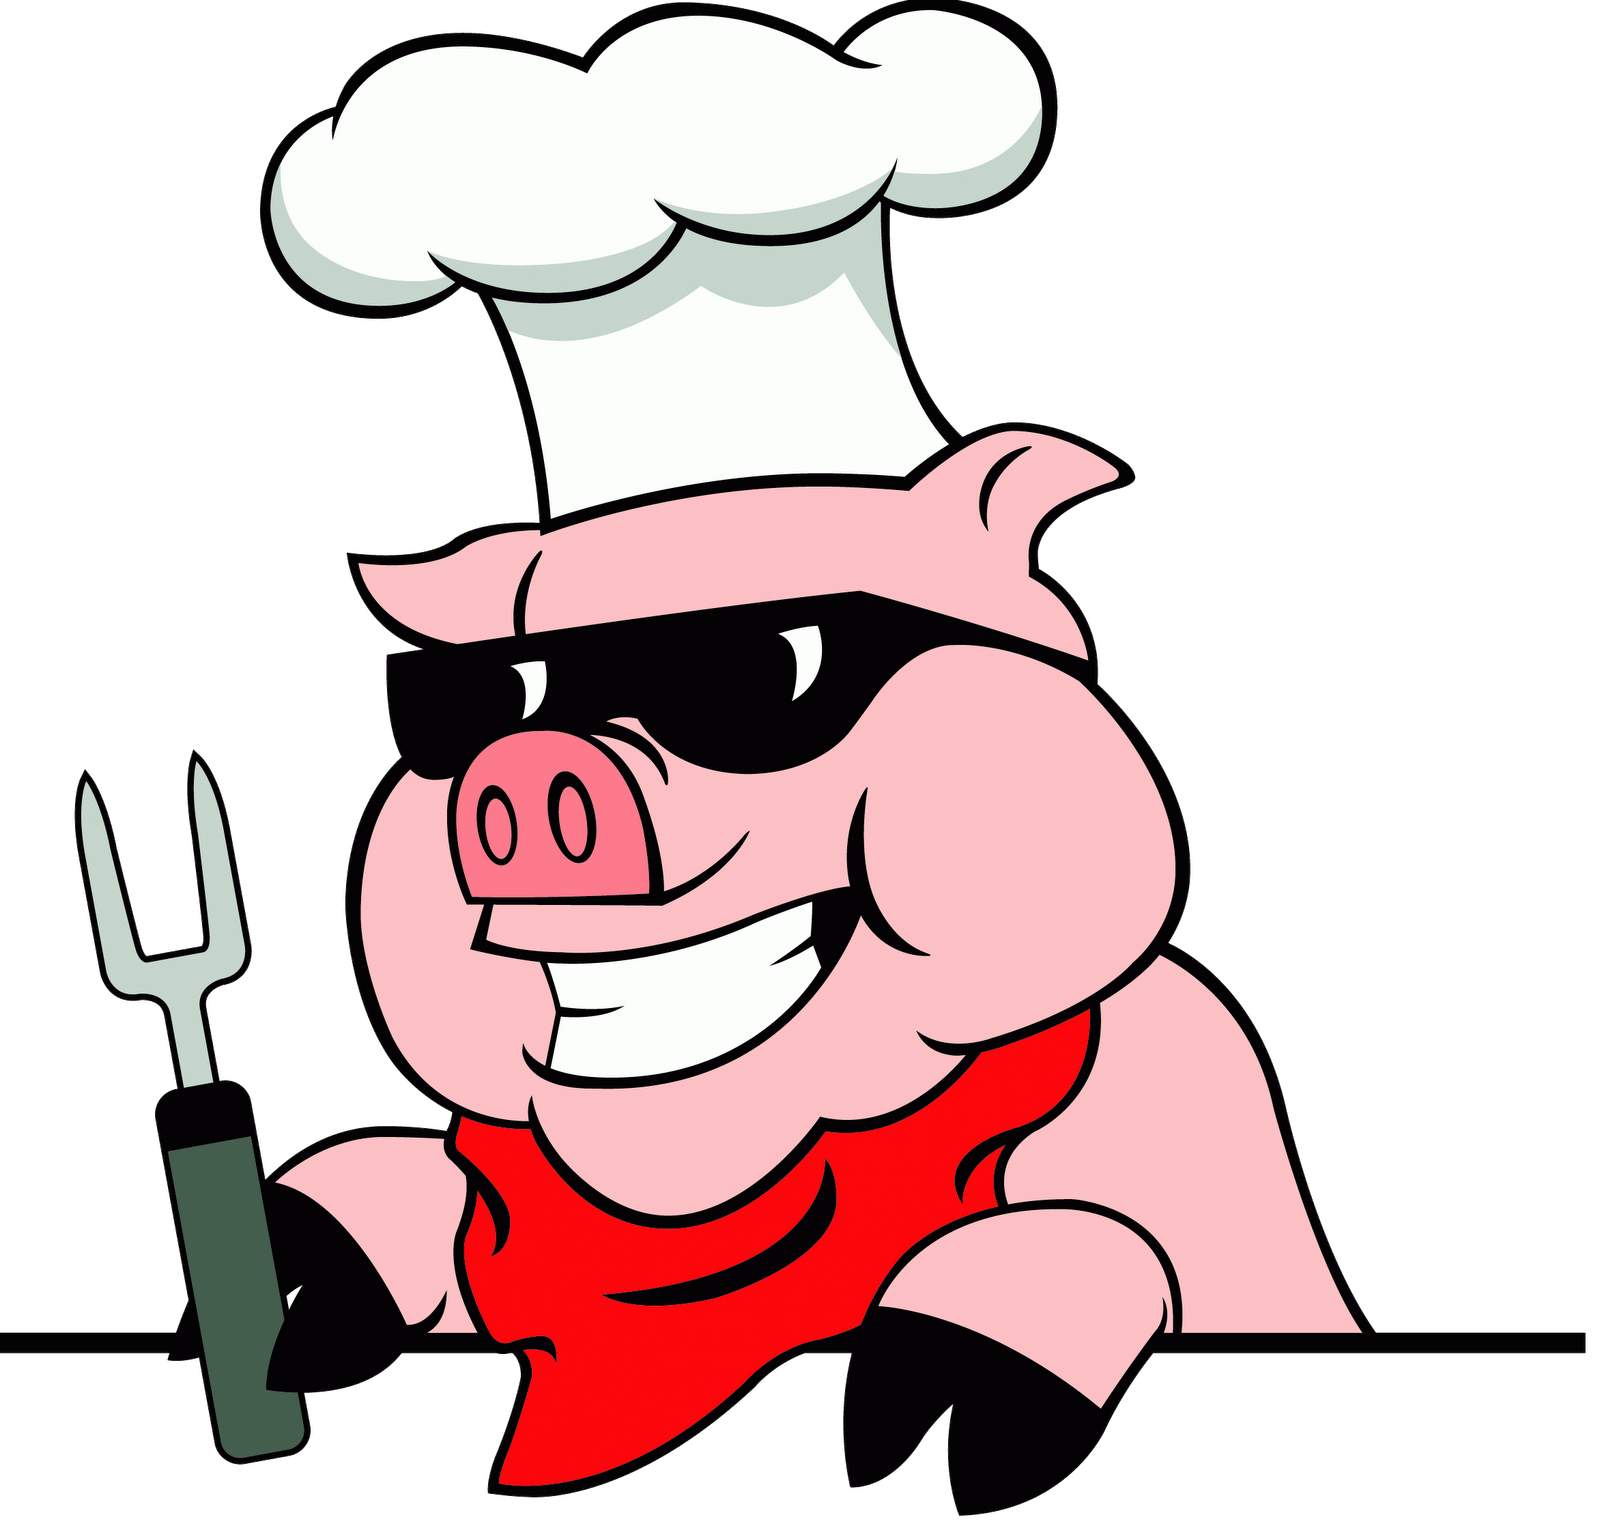 Pig bbq clipart free clipart images 2.